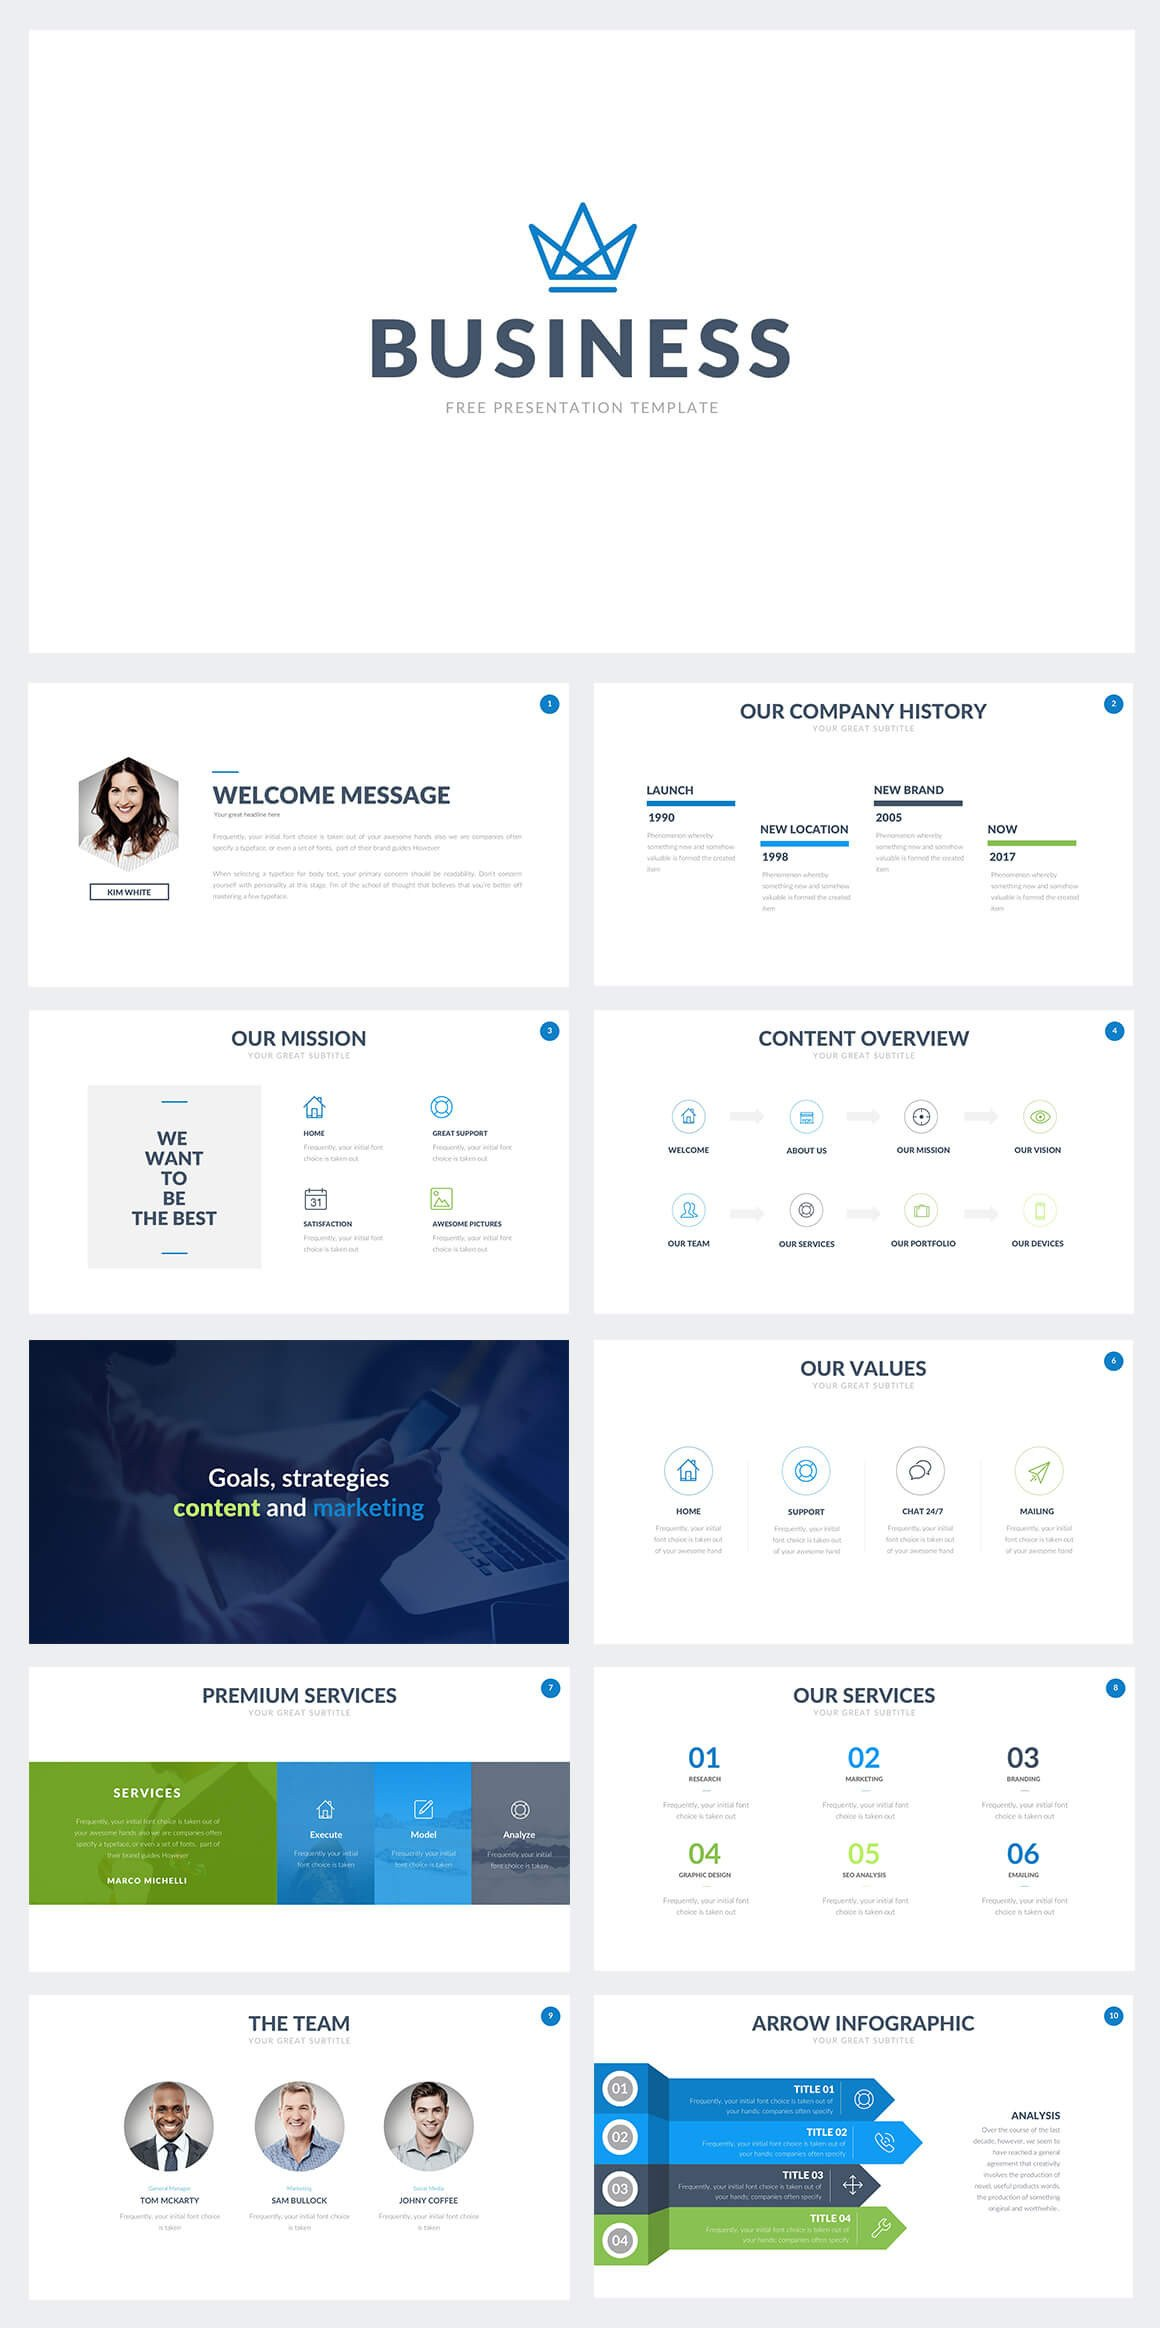 Powerpoint Presentation Outline Example 50 Best Free Cool Powerpoint Templates Of 2018 Updated